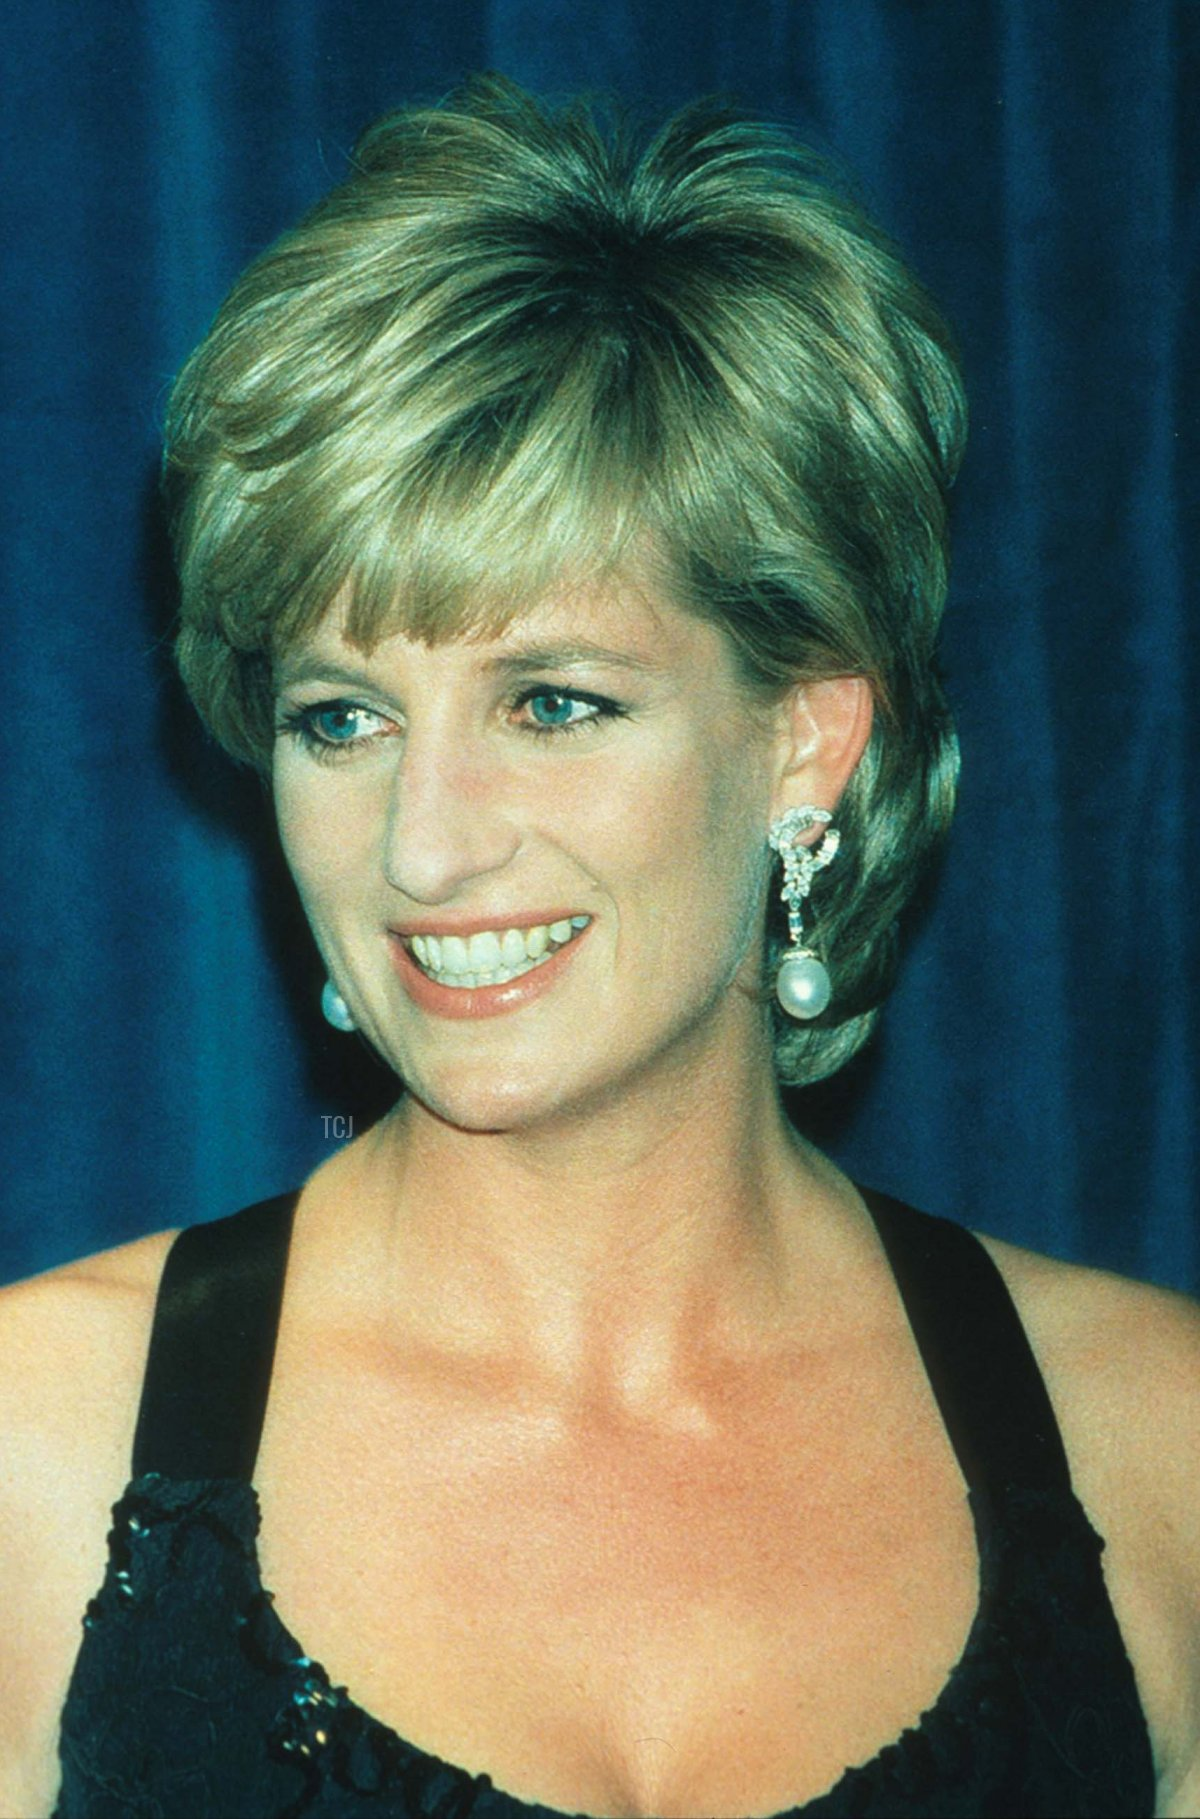 Lady Diana Spencer smiles at the 41st annual United Cerebral Palsy Awards gala December 11, 1995 in New York City. Lady Diana, the Princess of Wales, received the UCP Humanitarian Award at the fundraising evening